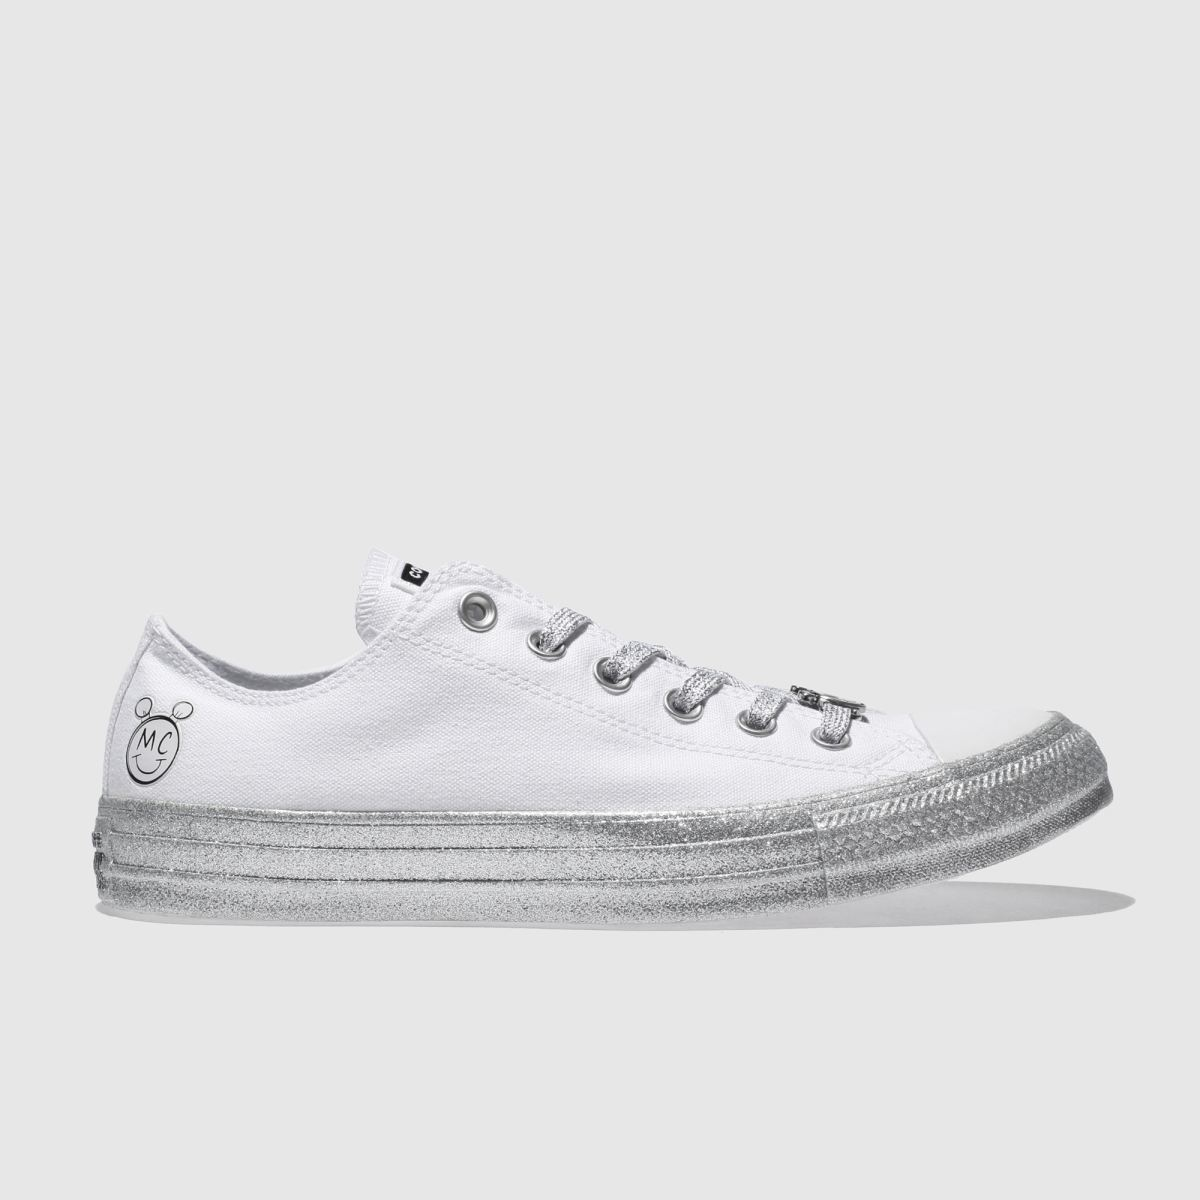 Converse White & Silver All Star Miley Cyrus Ox Trainers